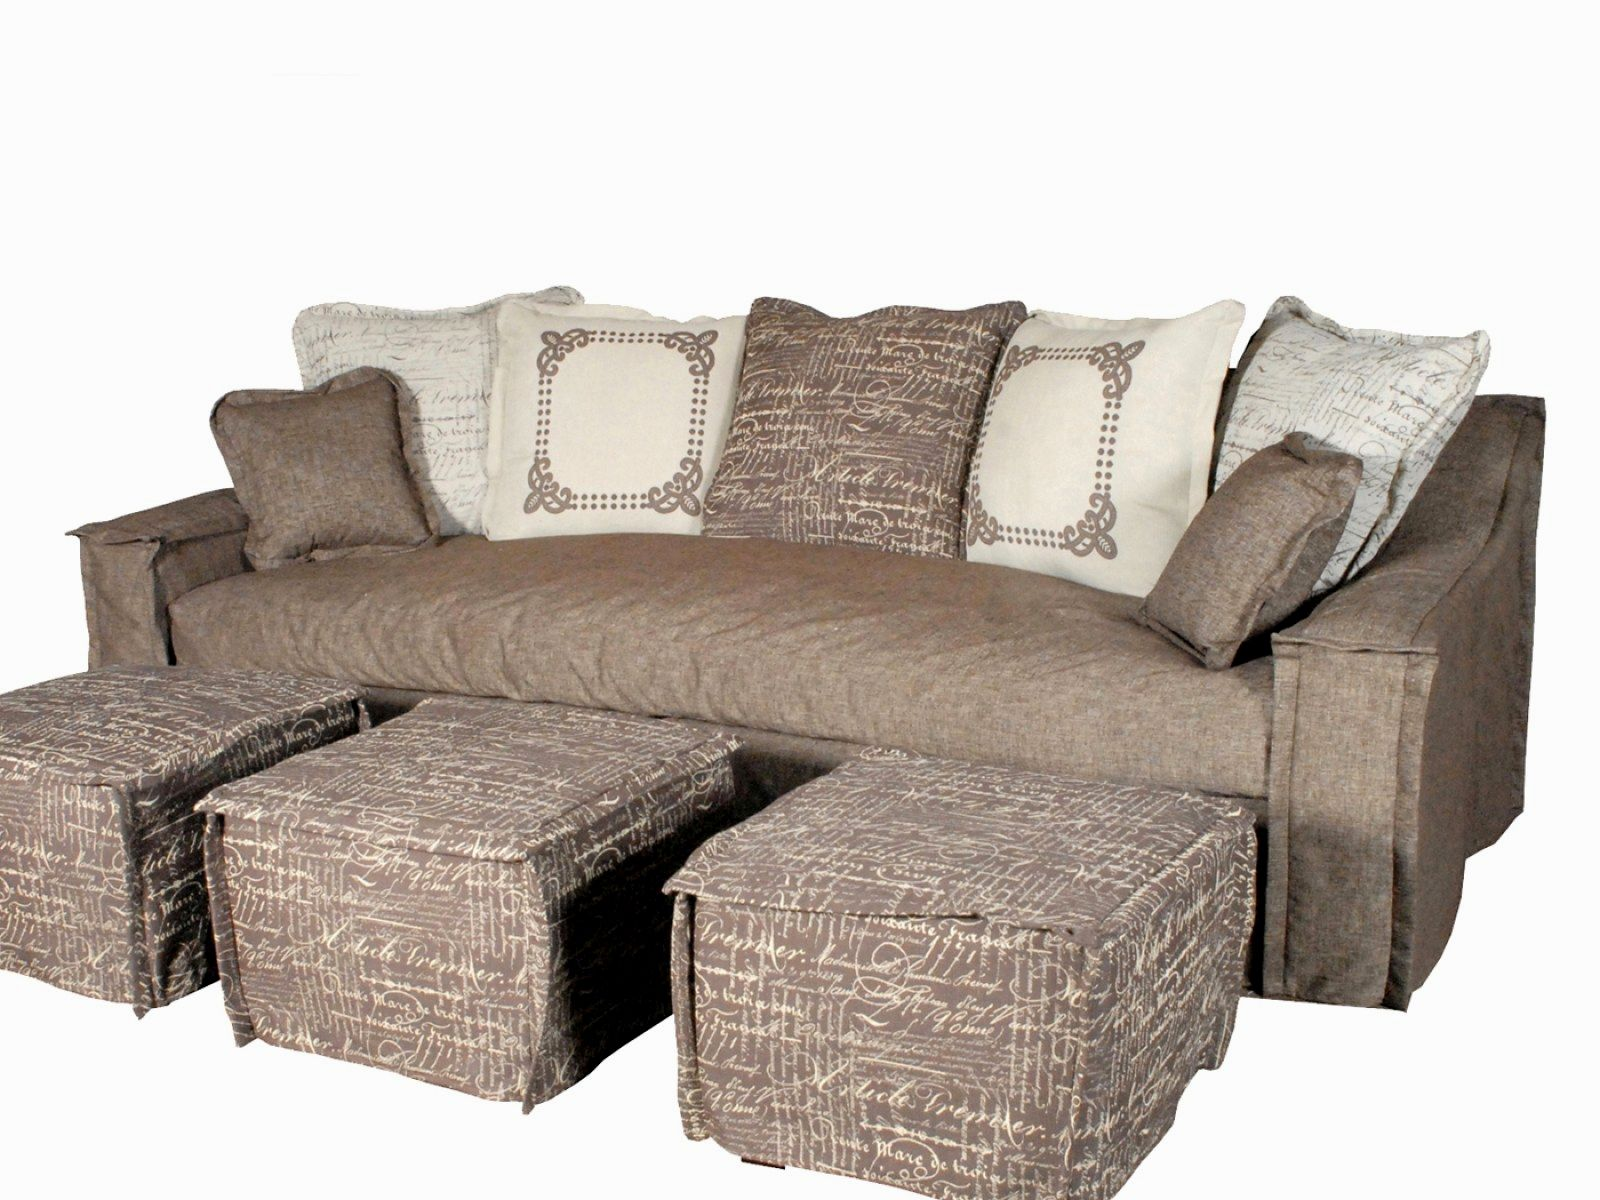 beautiful sectional sofas for cheap photograph-Cute Sectional sofas for Cheap Ideas